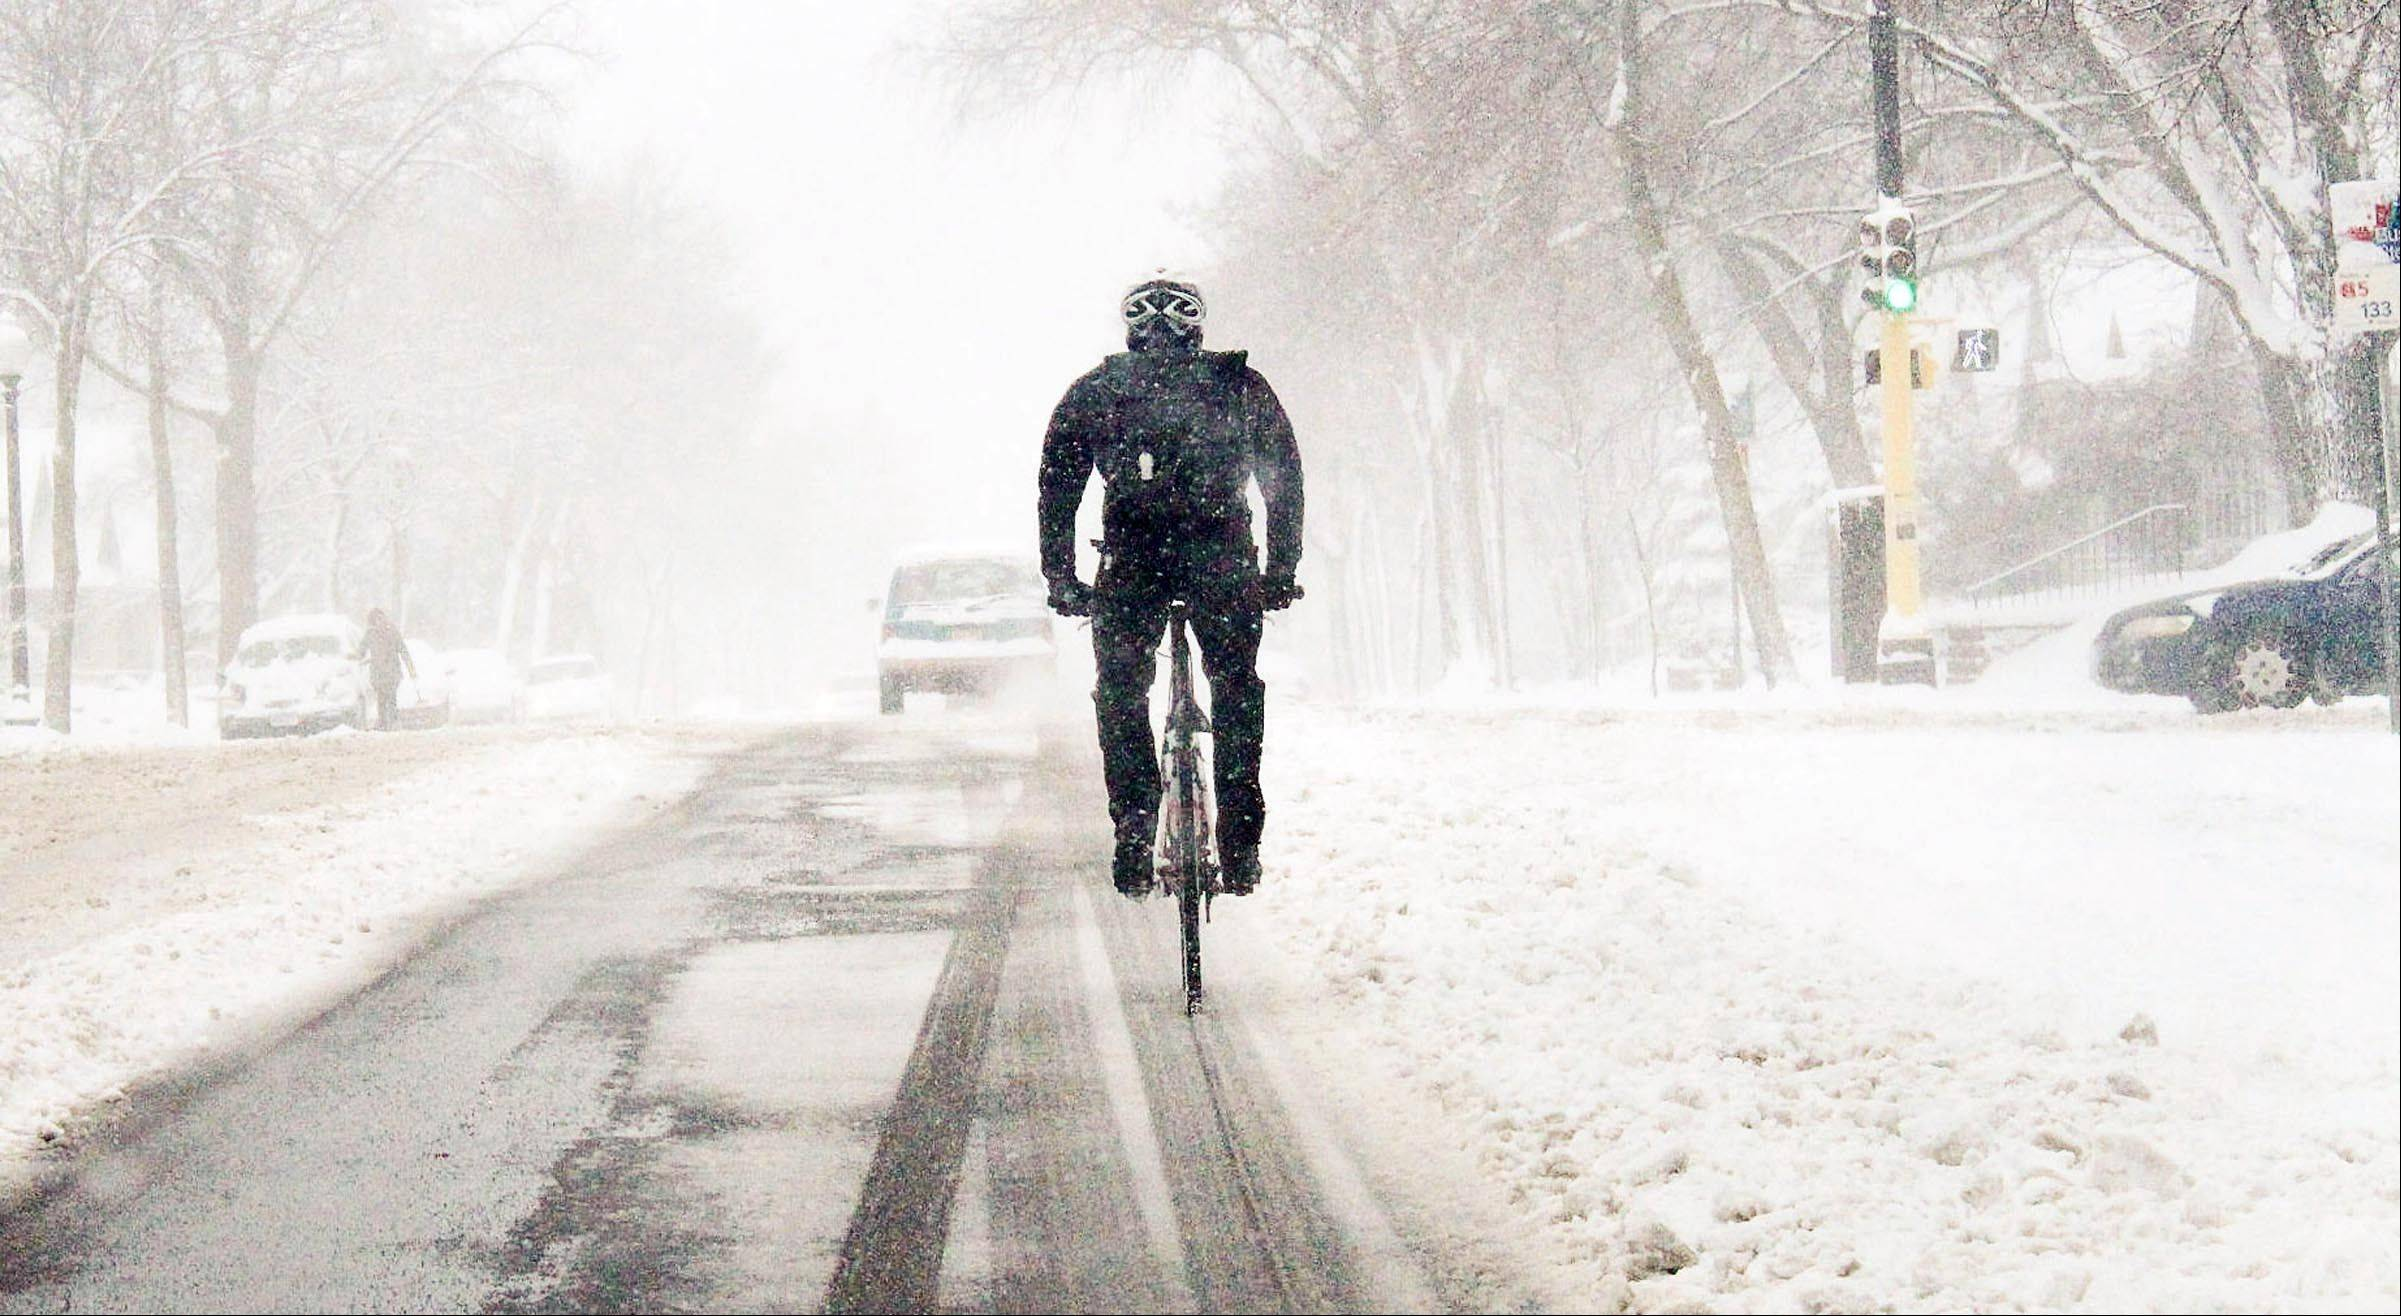 Jeff Frane, 33 tries to bike through the snow on Chicago Avenue in Minneapolis, Minn. on his way to work in Bloomington work on Thursday April 11, 2013. Heavy snow, sleet and gusty winds tested the patience of morning commuters across the southern half of Minnesota on Thursday as residents in the southwest corner of the state dealt with the aftereffects of an ice storm that knocked out power to thousands.